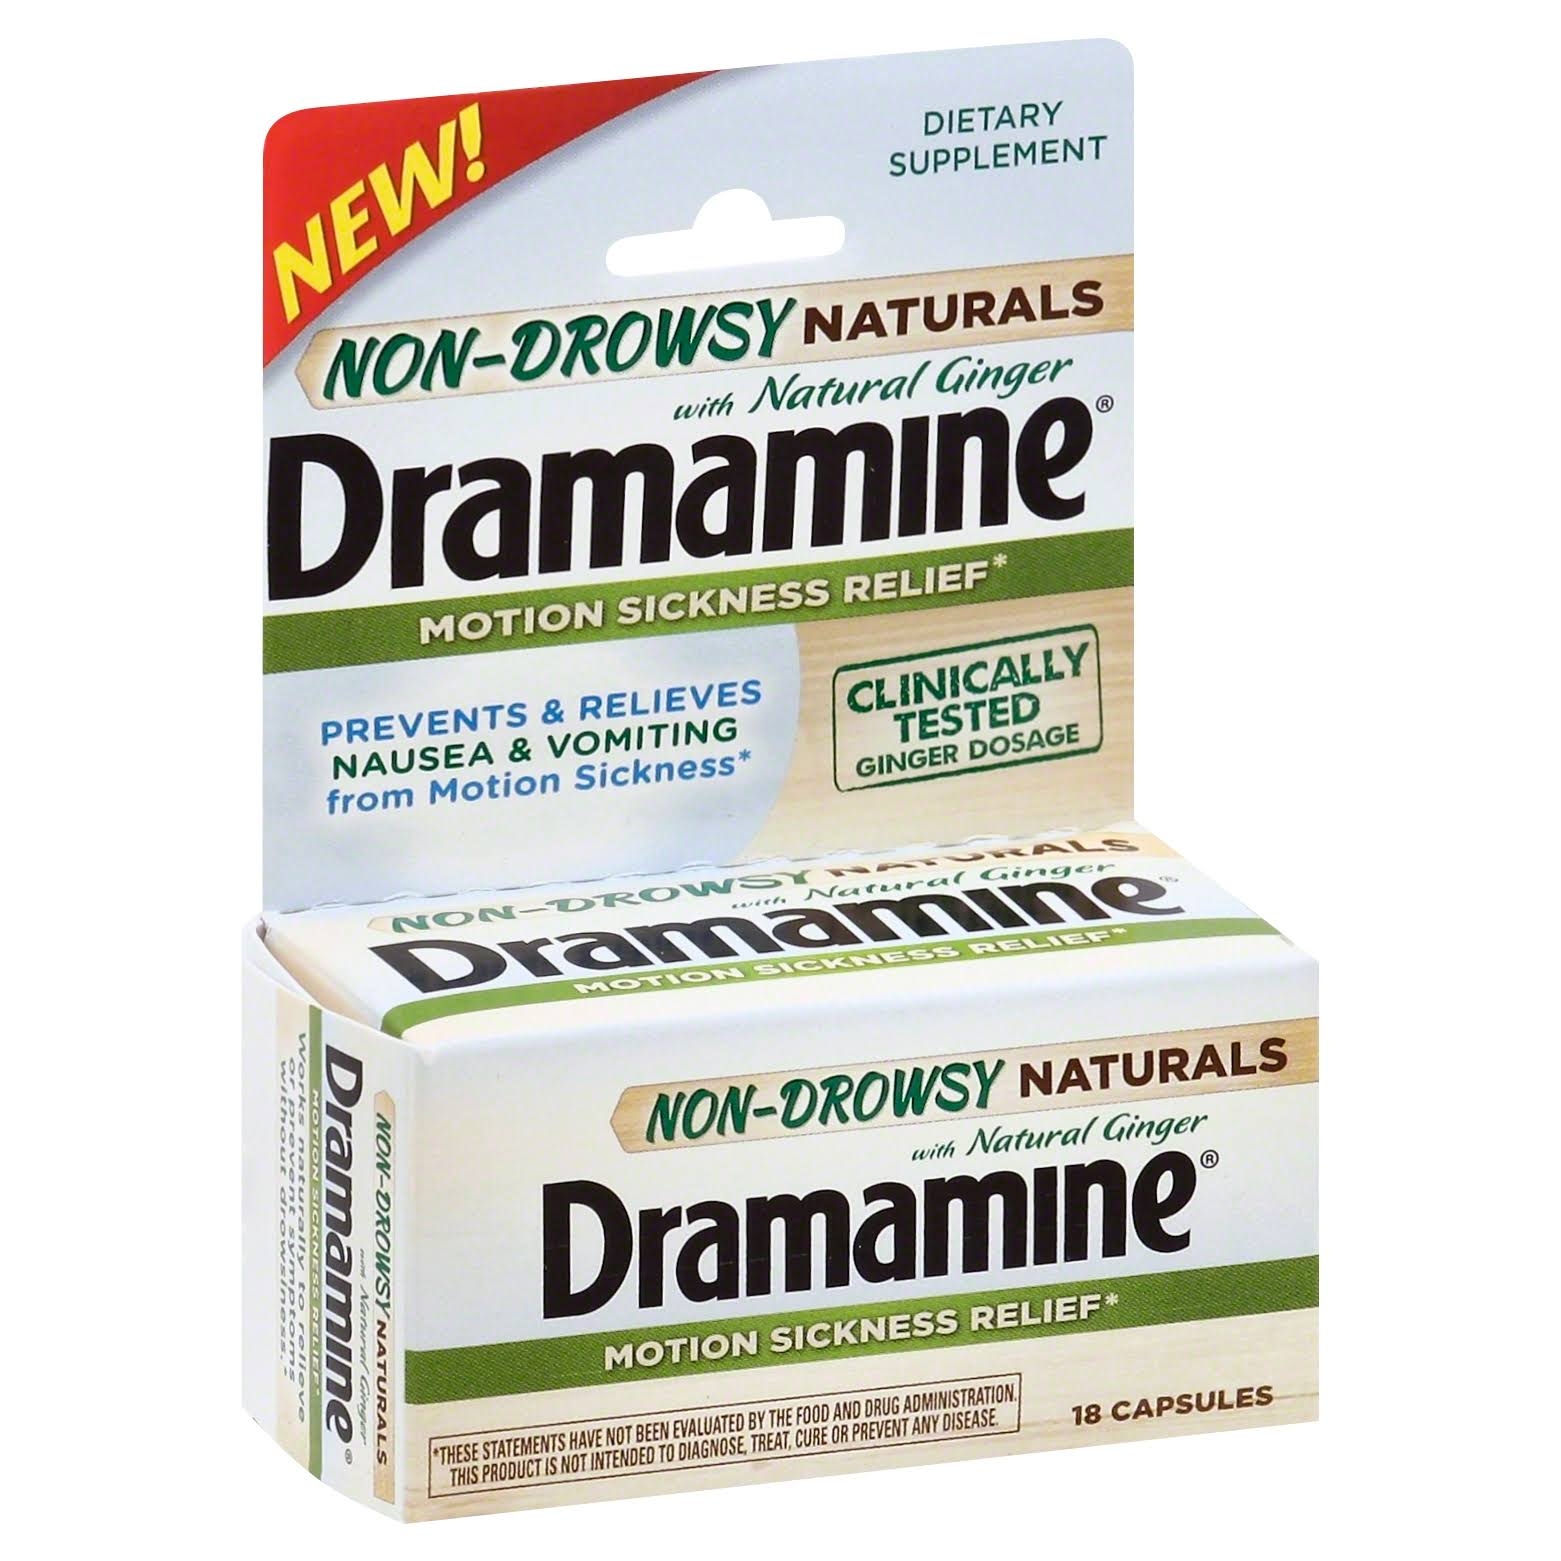 Dramamine Non-drowsy Naturals Motion Sickness Relief - 18 Capsules